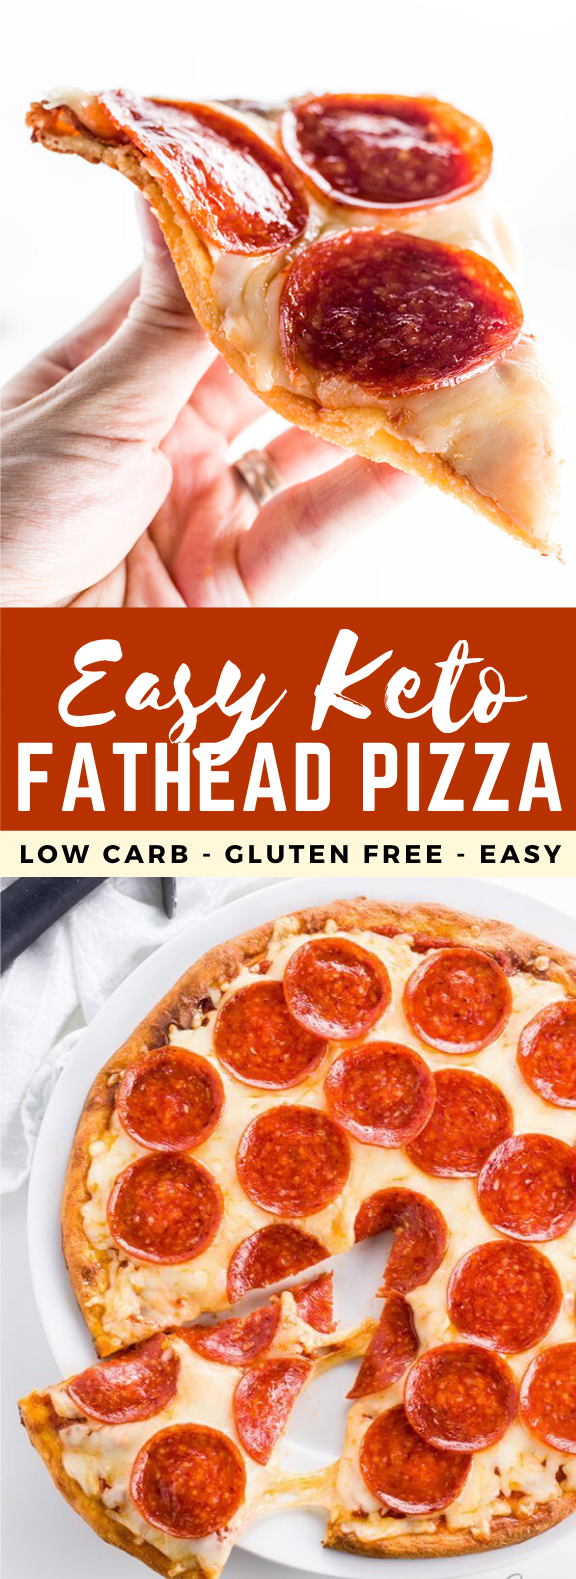 FATHEAD PIZZA CRUST RECIPE (LOW CARB KETO PIZZA) – 4 INGREDIENTS #healthy #diet